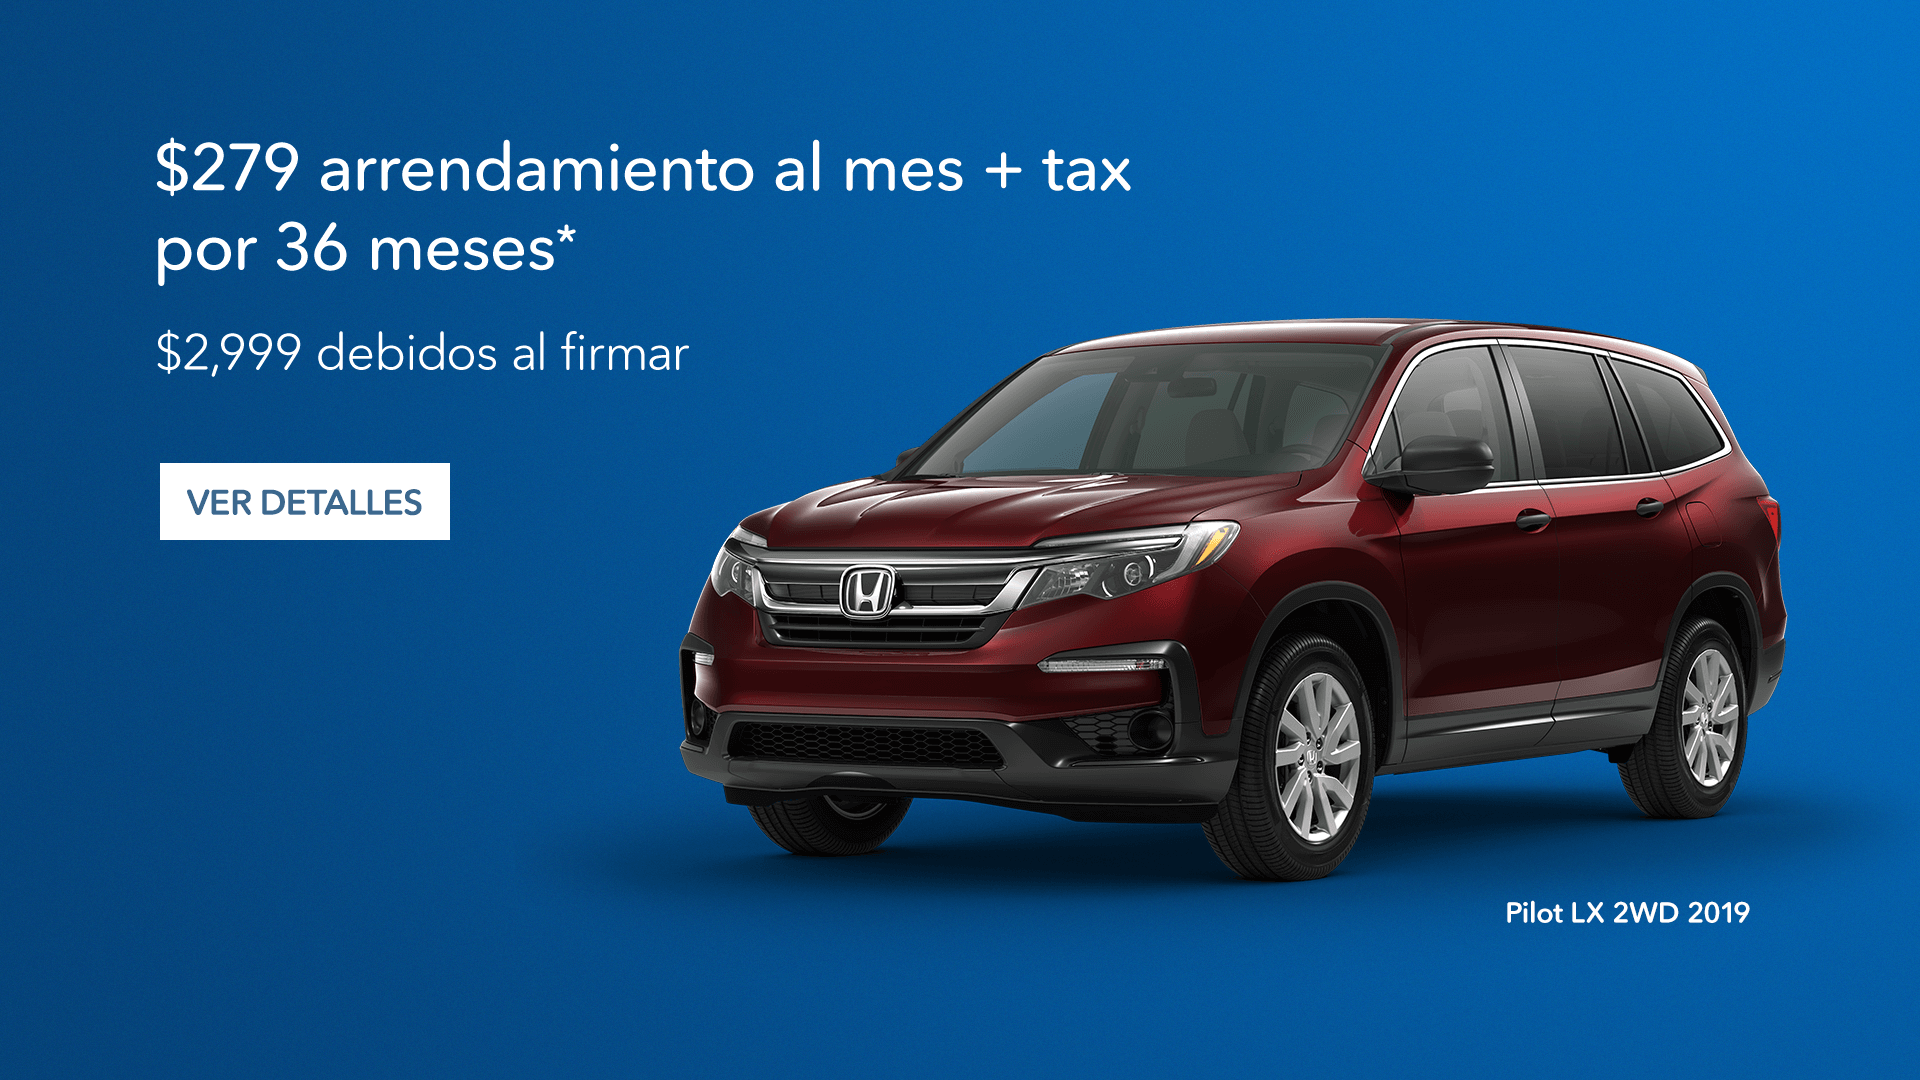 North Texas Honda Dealers 2019 Pilot LX 2WD Lease Offer Spanish Slide